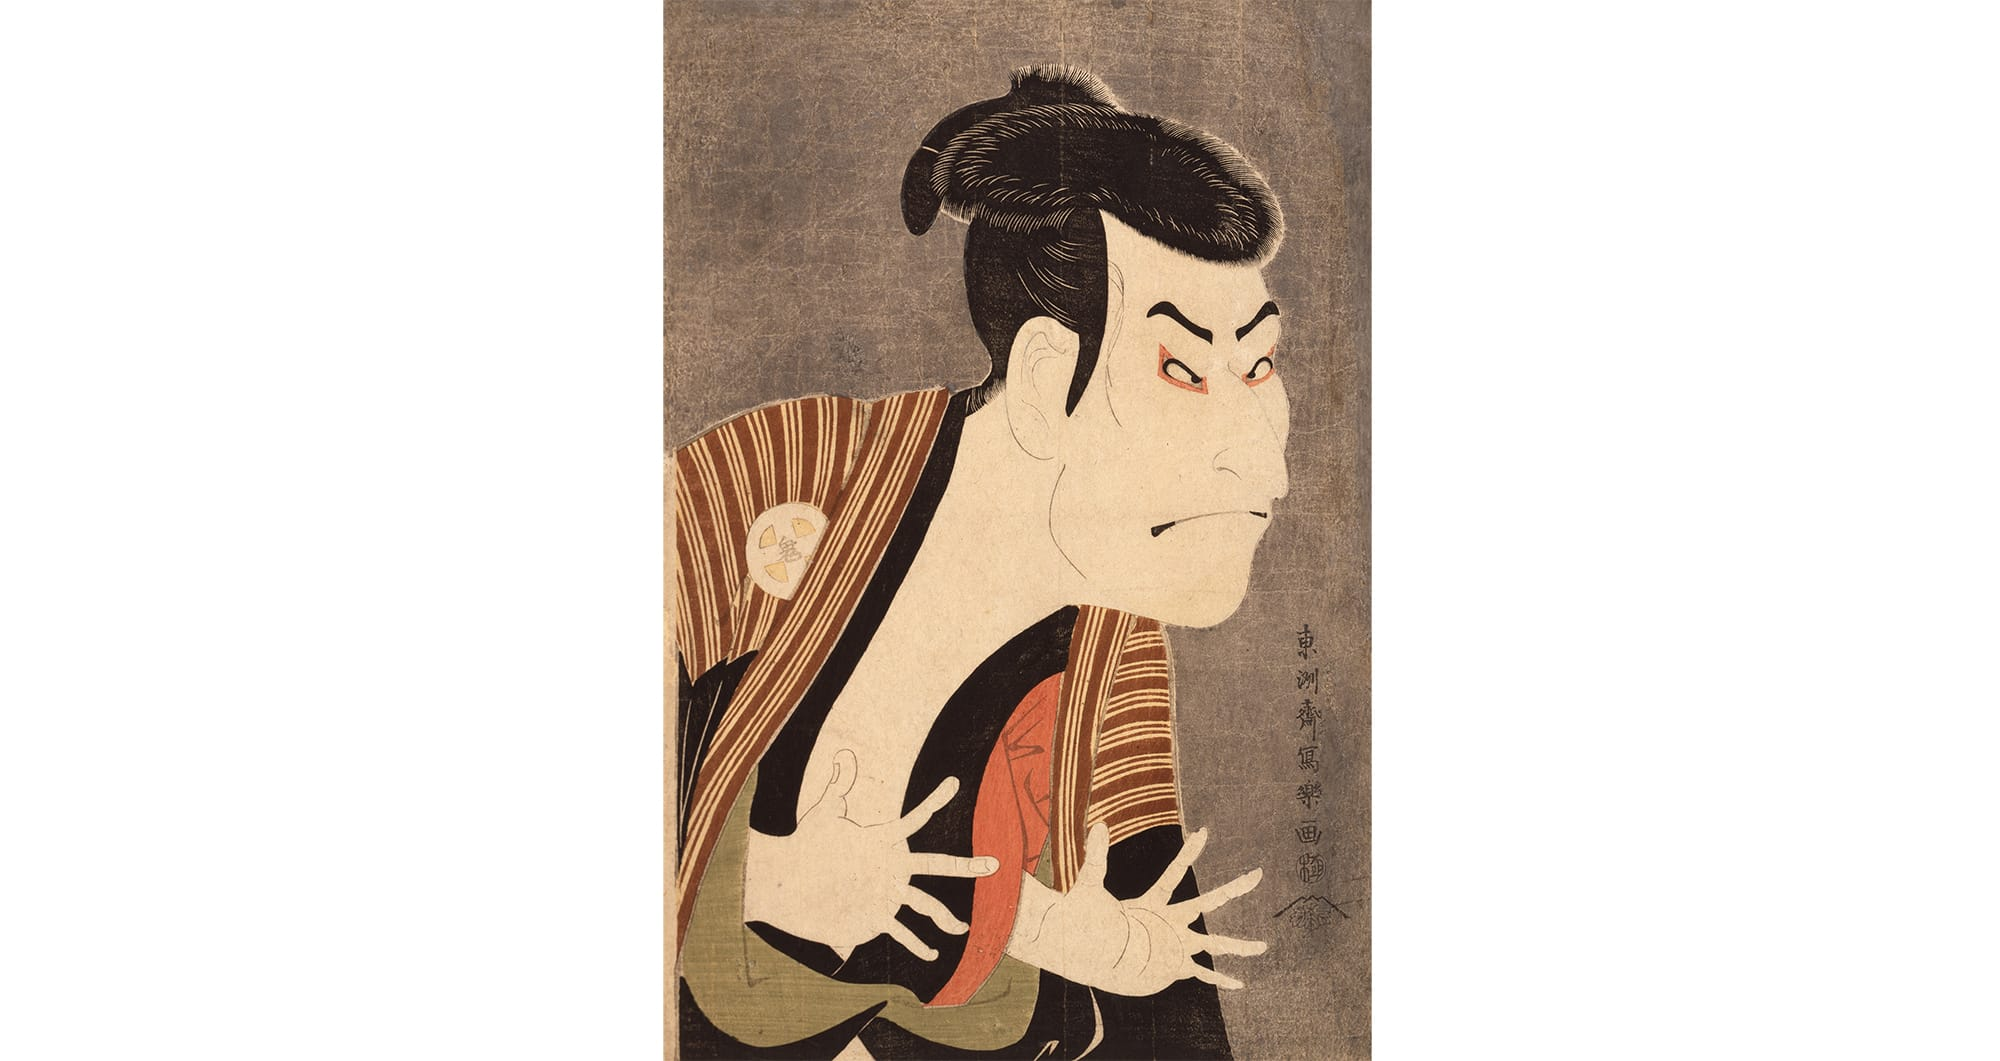 Toshusai Sharaku, The Actor Otani Oniji Ⅲ as Edobei, Oban, Nishiki-e, May, 6th Year of the Kansei Era (1795) , Japan Ukiyo-e Museum. Similar to the photographic portraits of celebrities we have today, the Yakusha-e (Actor Prints) became popular among common people and lead to making the ukiyo-e to become a part of their lives.